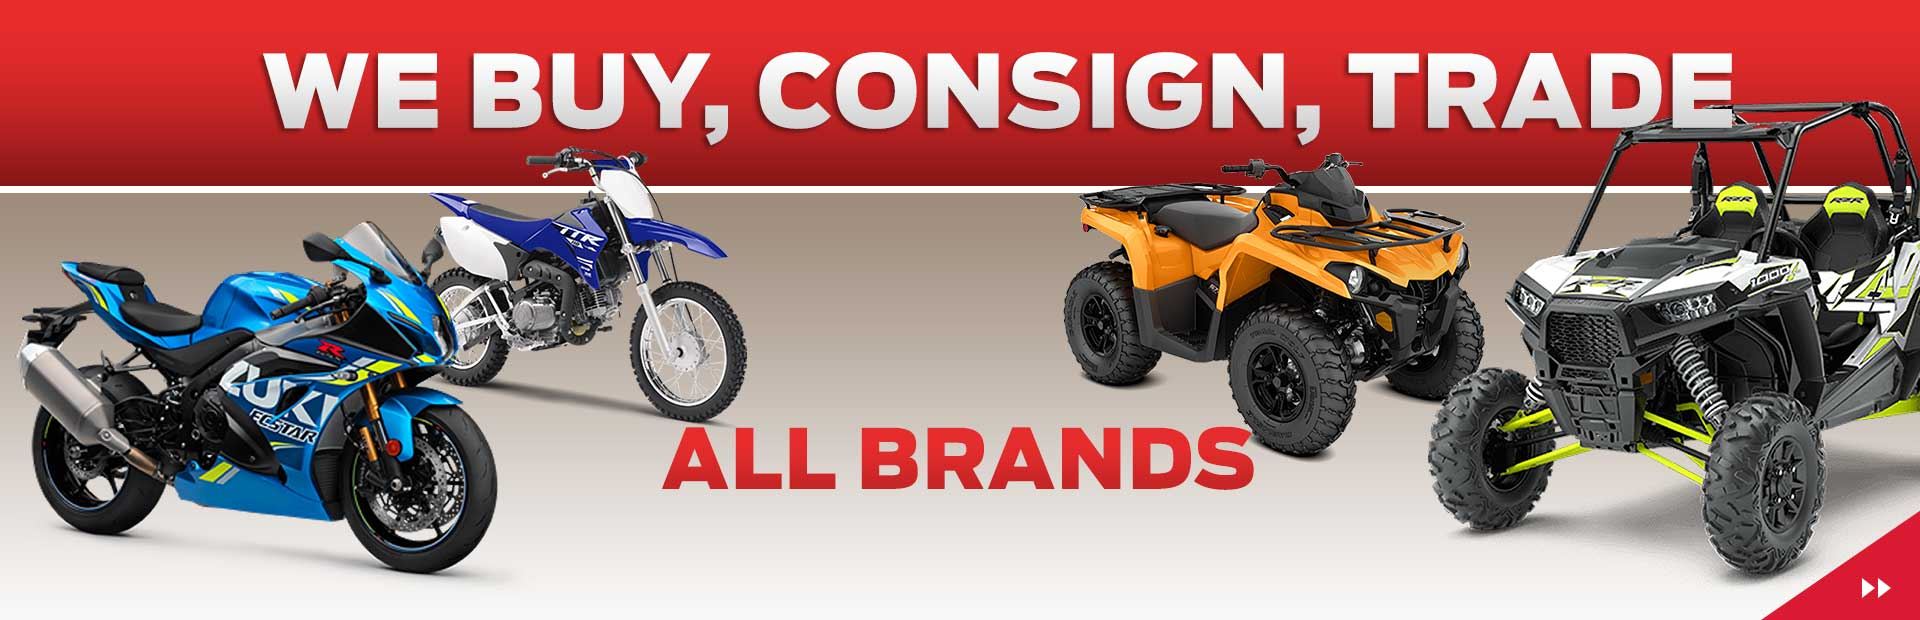 We Buy, Consign, Trade ALL BRANDS! Find out more